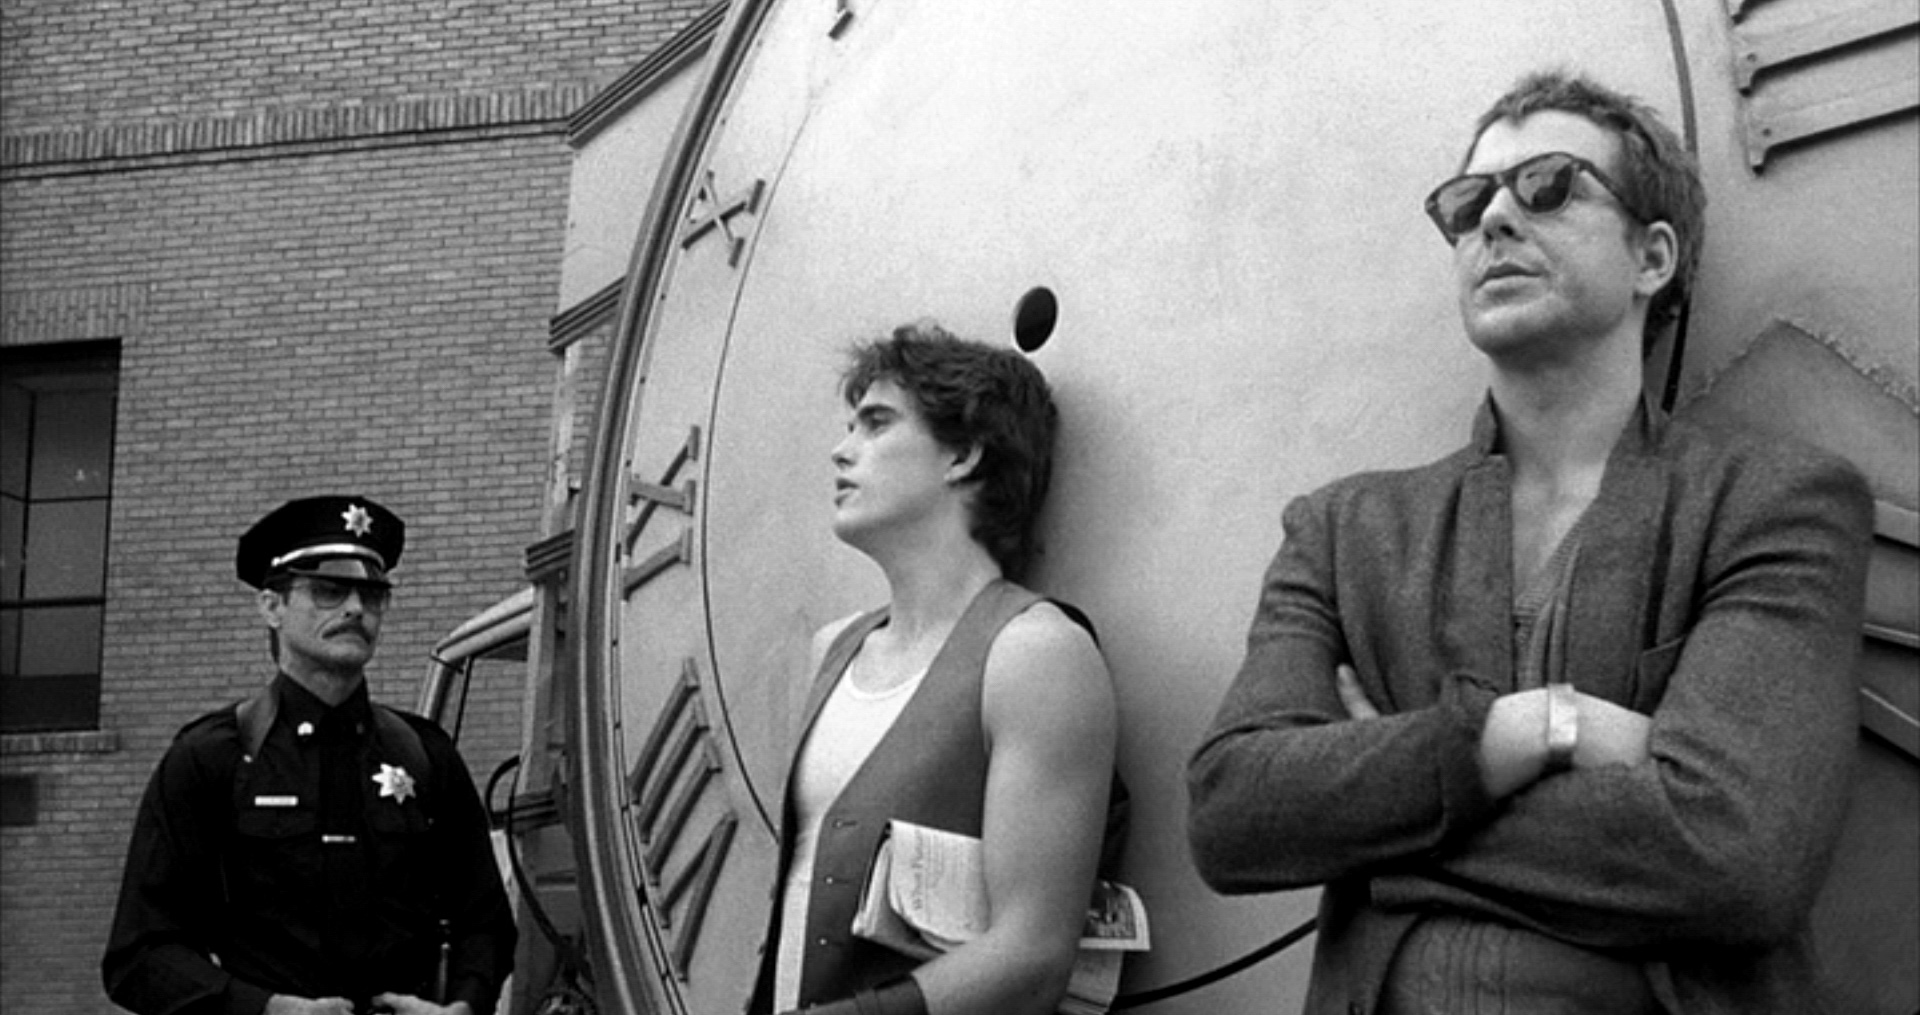 Francis ford coppola s rumble fish the motorcycle boy for Rumble fish movie